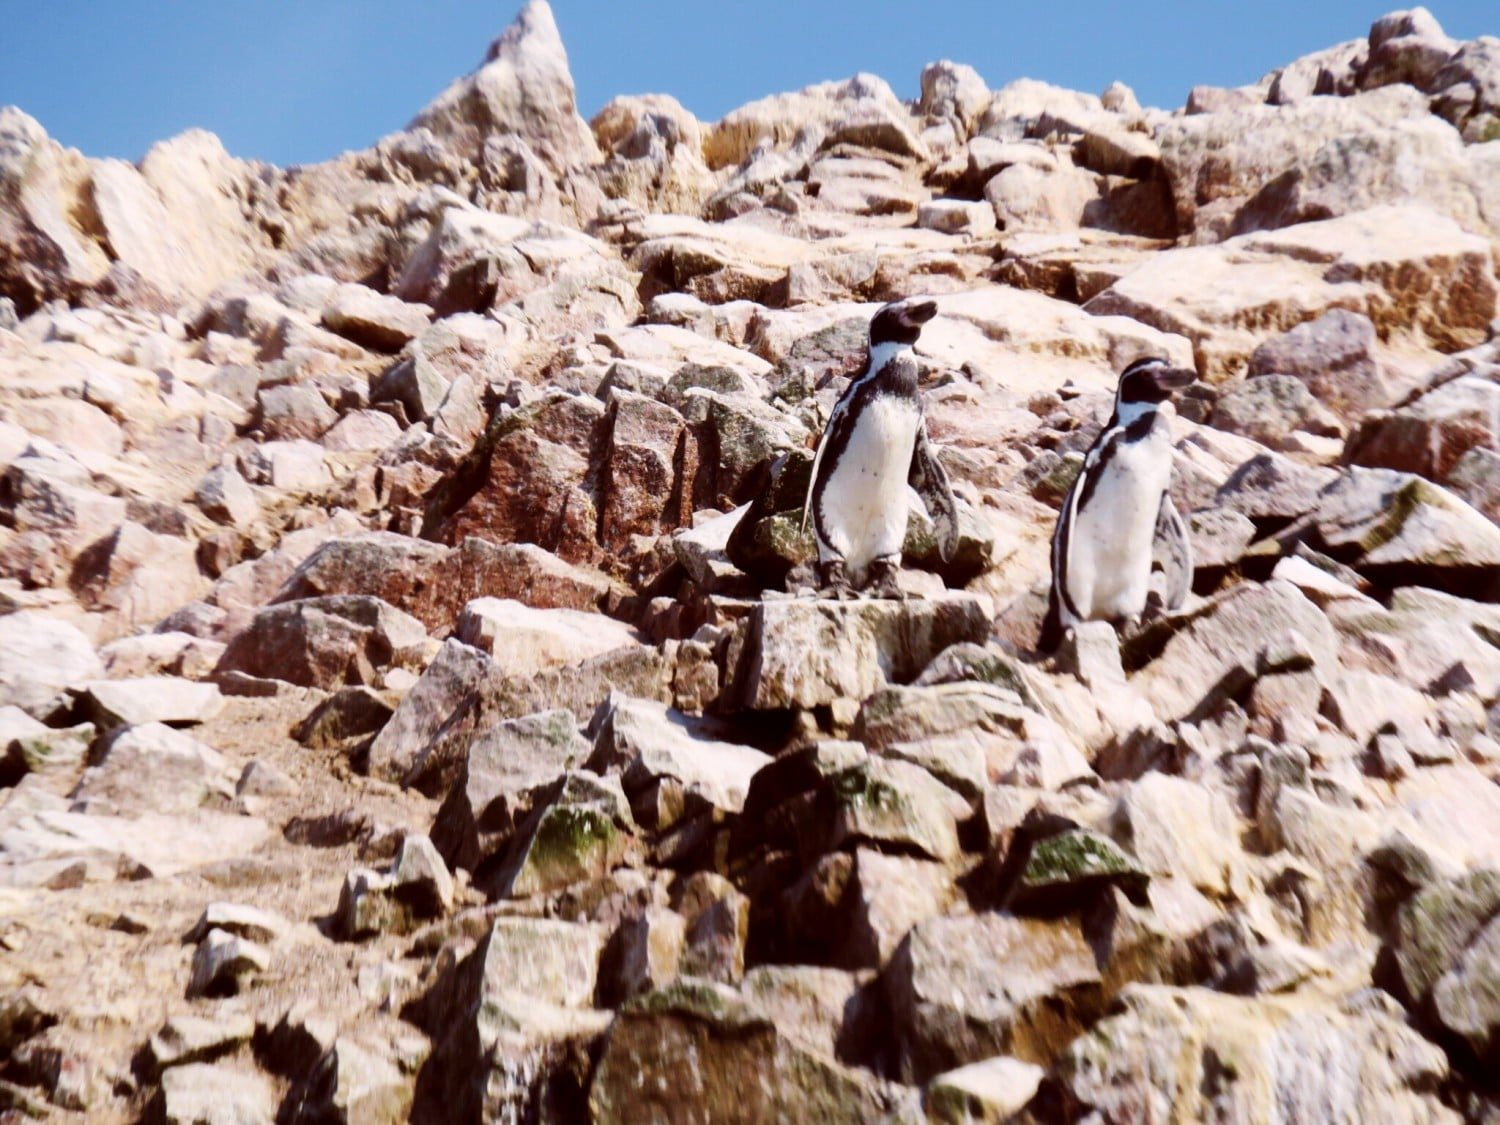 Humboldt Penguins on Ballestas Islands